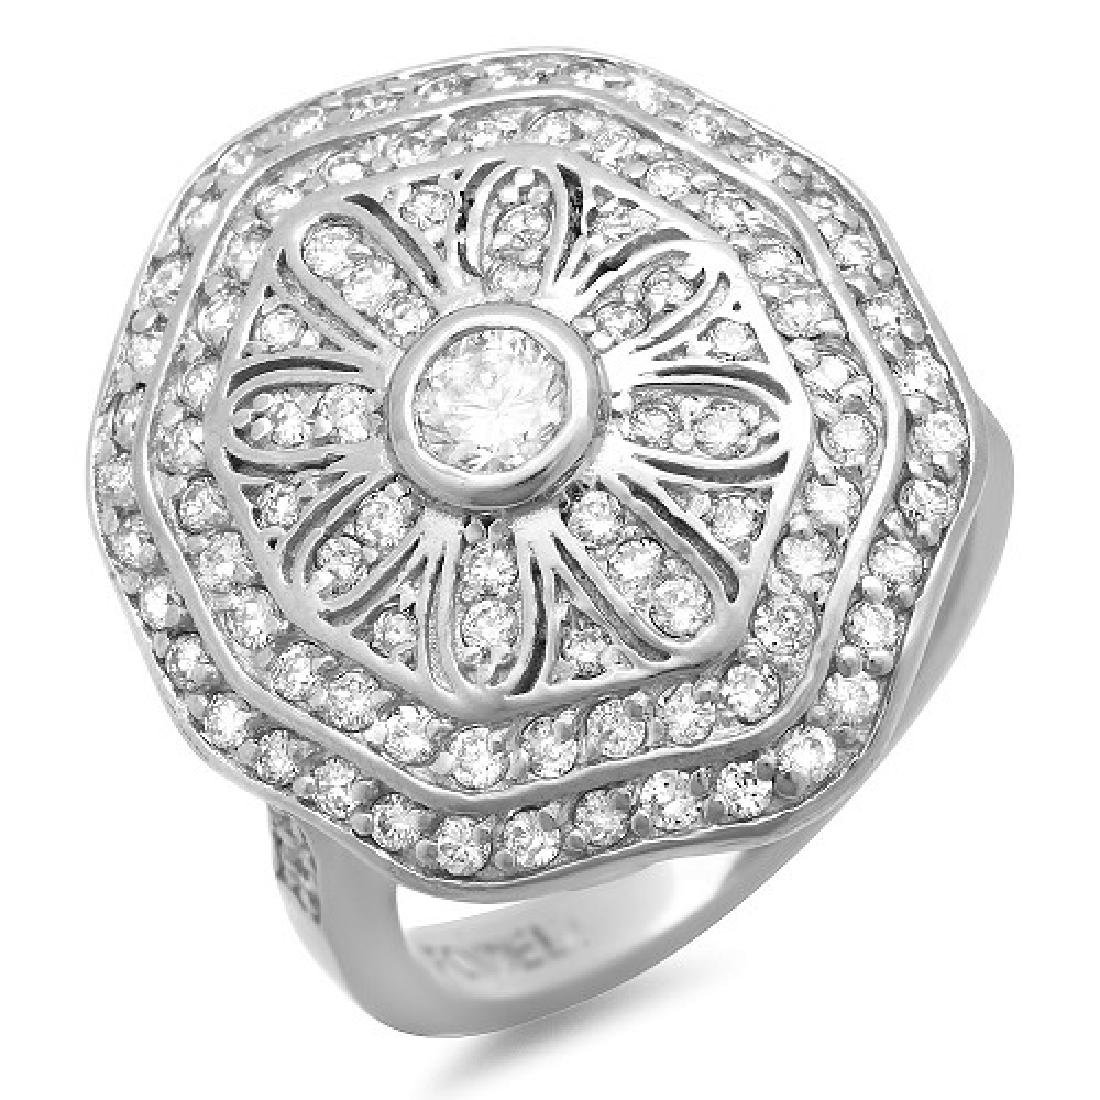 1.10 Carat Natural Diamond 18K Solid White Gold Ring